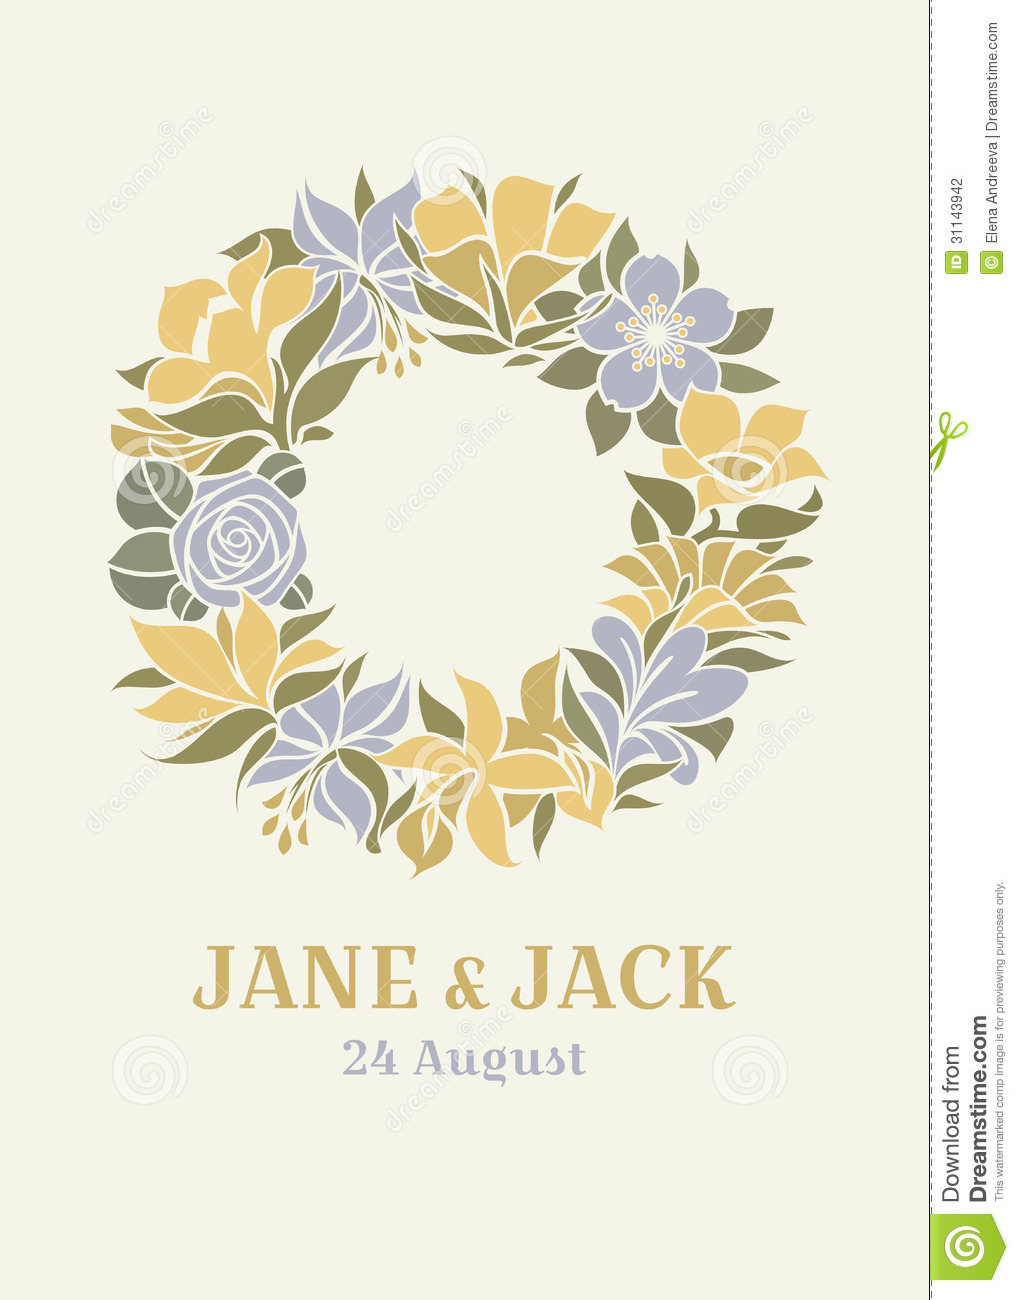 Wedding Design With Floral Wreath Stock Photography - Image: 31143942